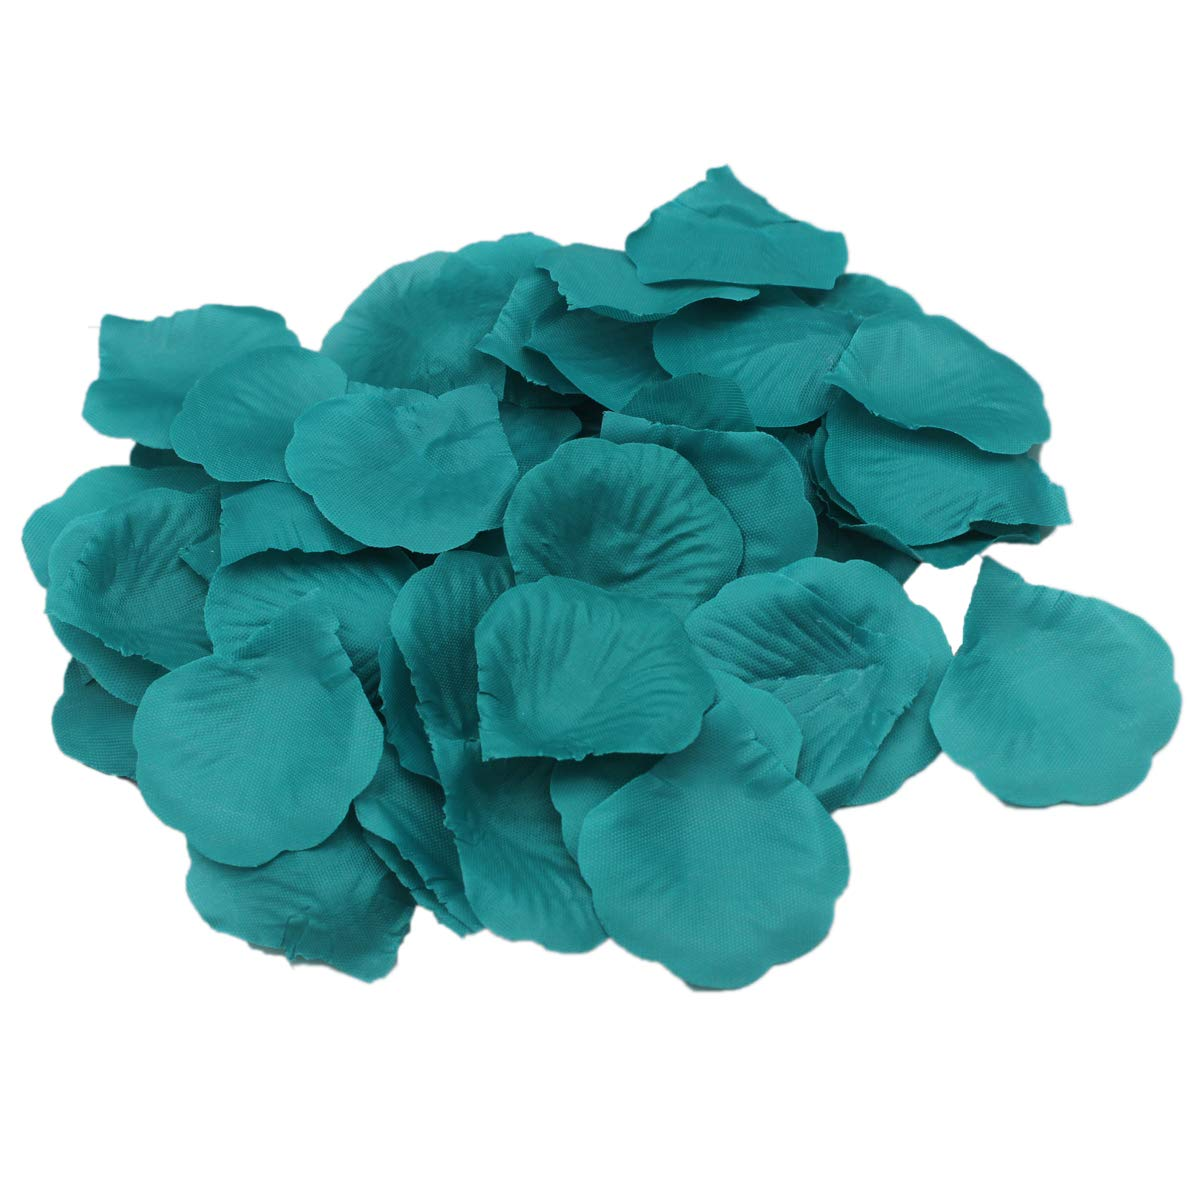 ALLHEARTDESIRES-Teal-Rose-Flower-Petals-Wedding-Table-Confetti-Bridal-Shower-Party-Favor-Decoration-1000